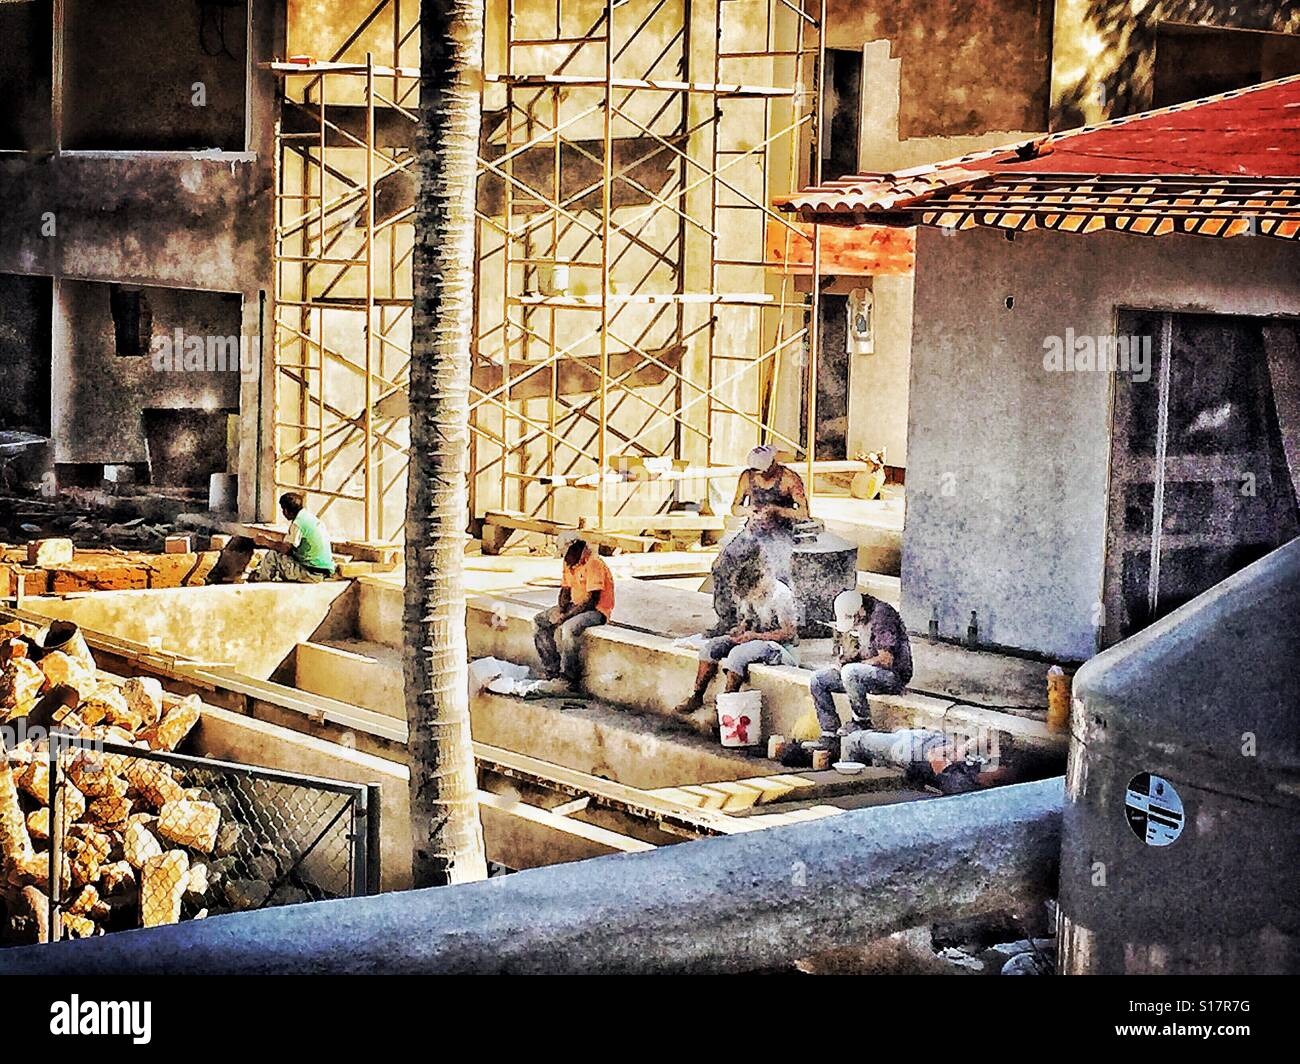 Construction site with workers on a break using their cell phones. - Stock Image